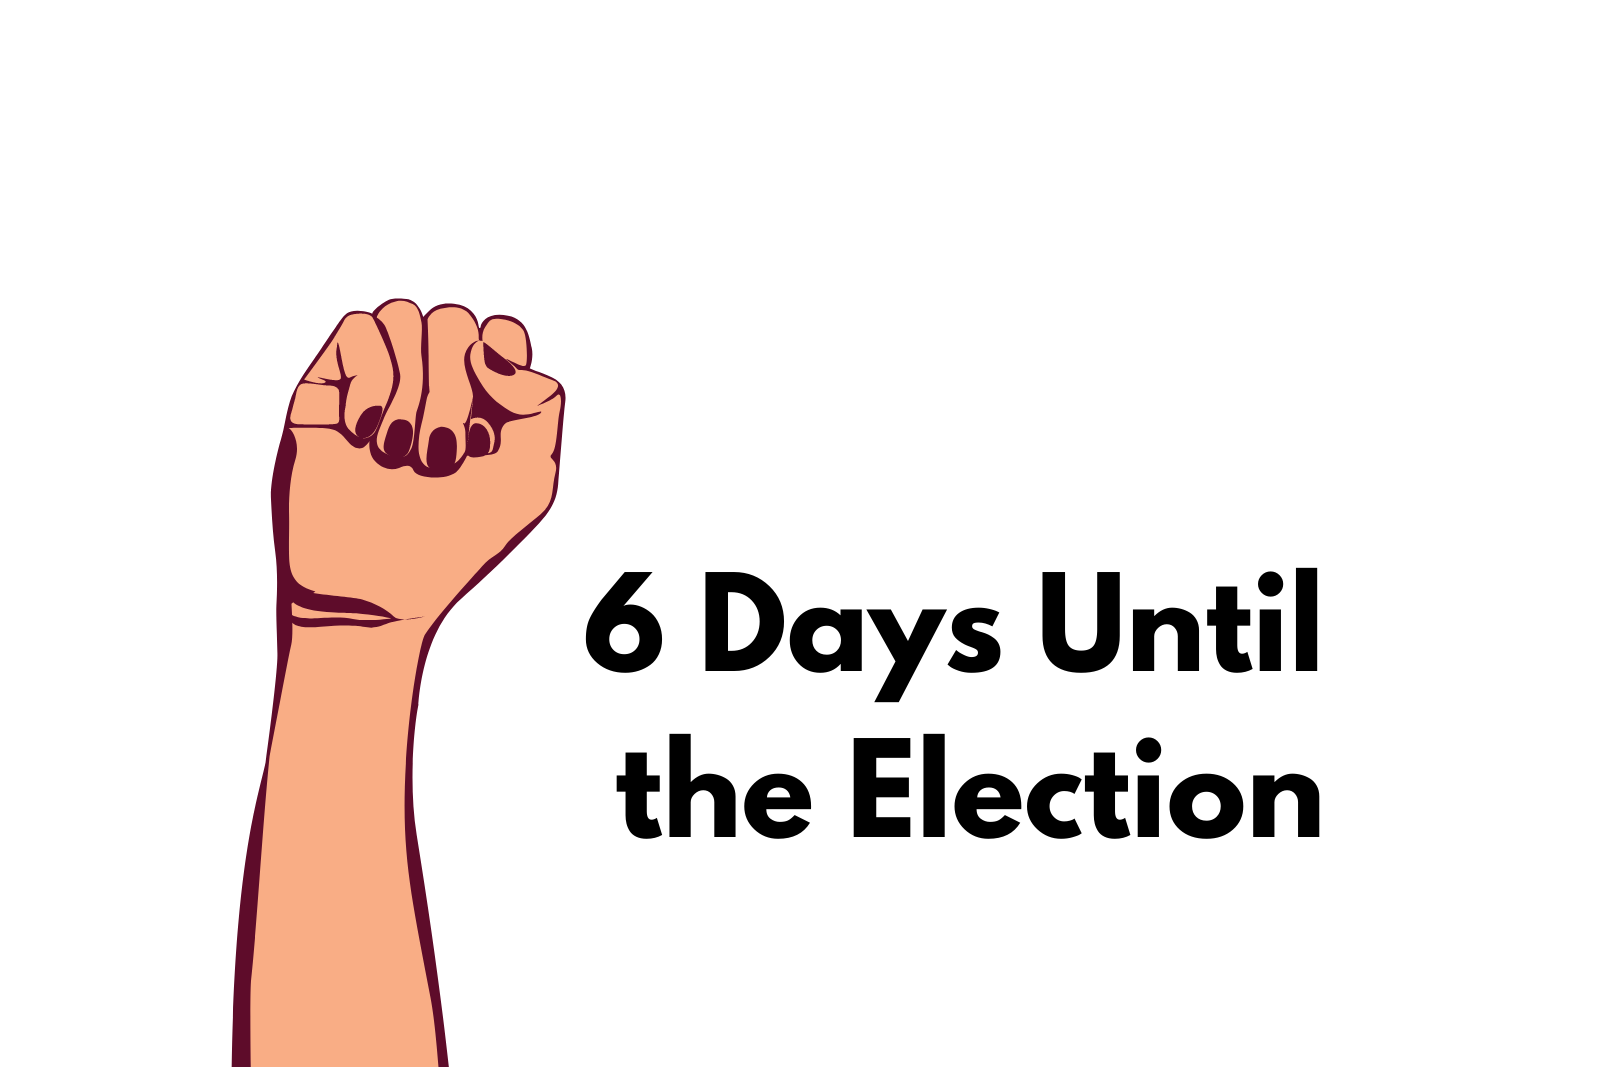 Bonus: 6 Days Until The Election